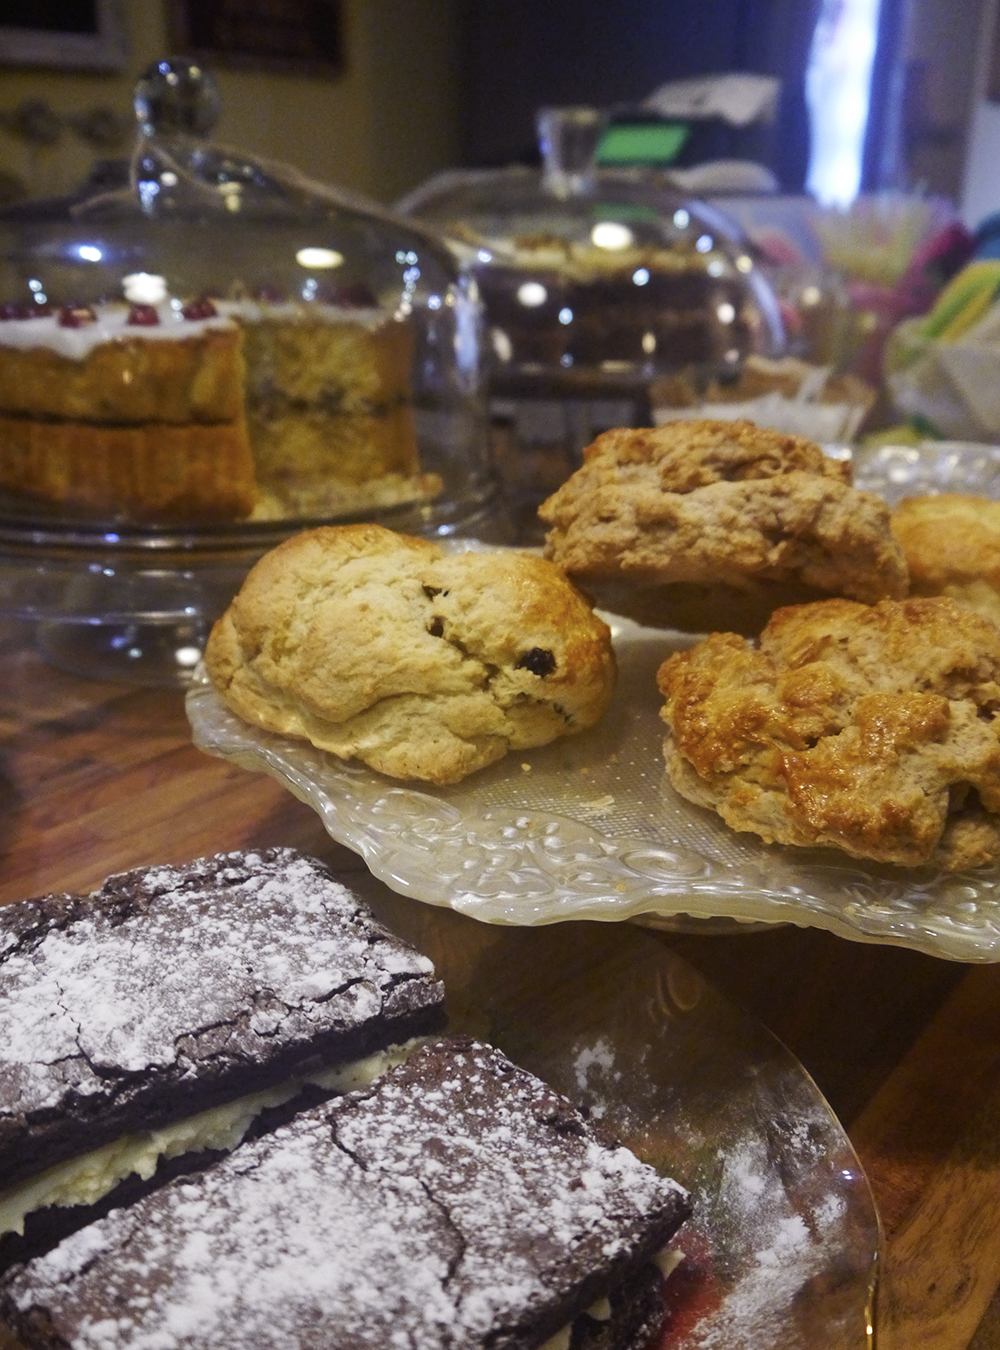 cake, scones, brownies, The Palais Dundee, cafe, dundee cafe, places to visit Dundee